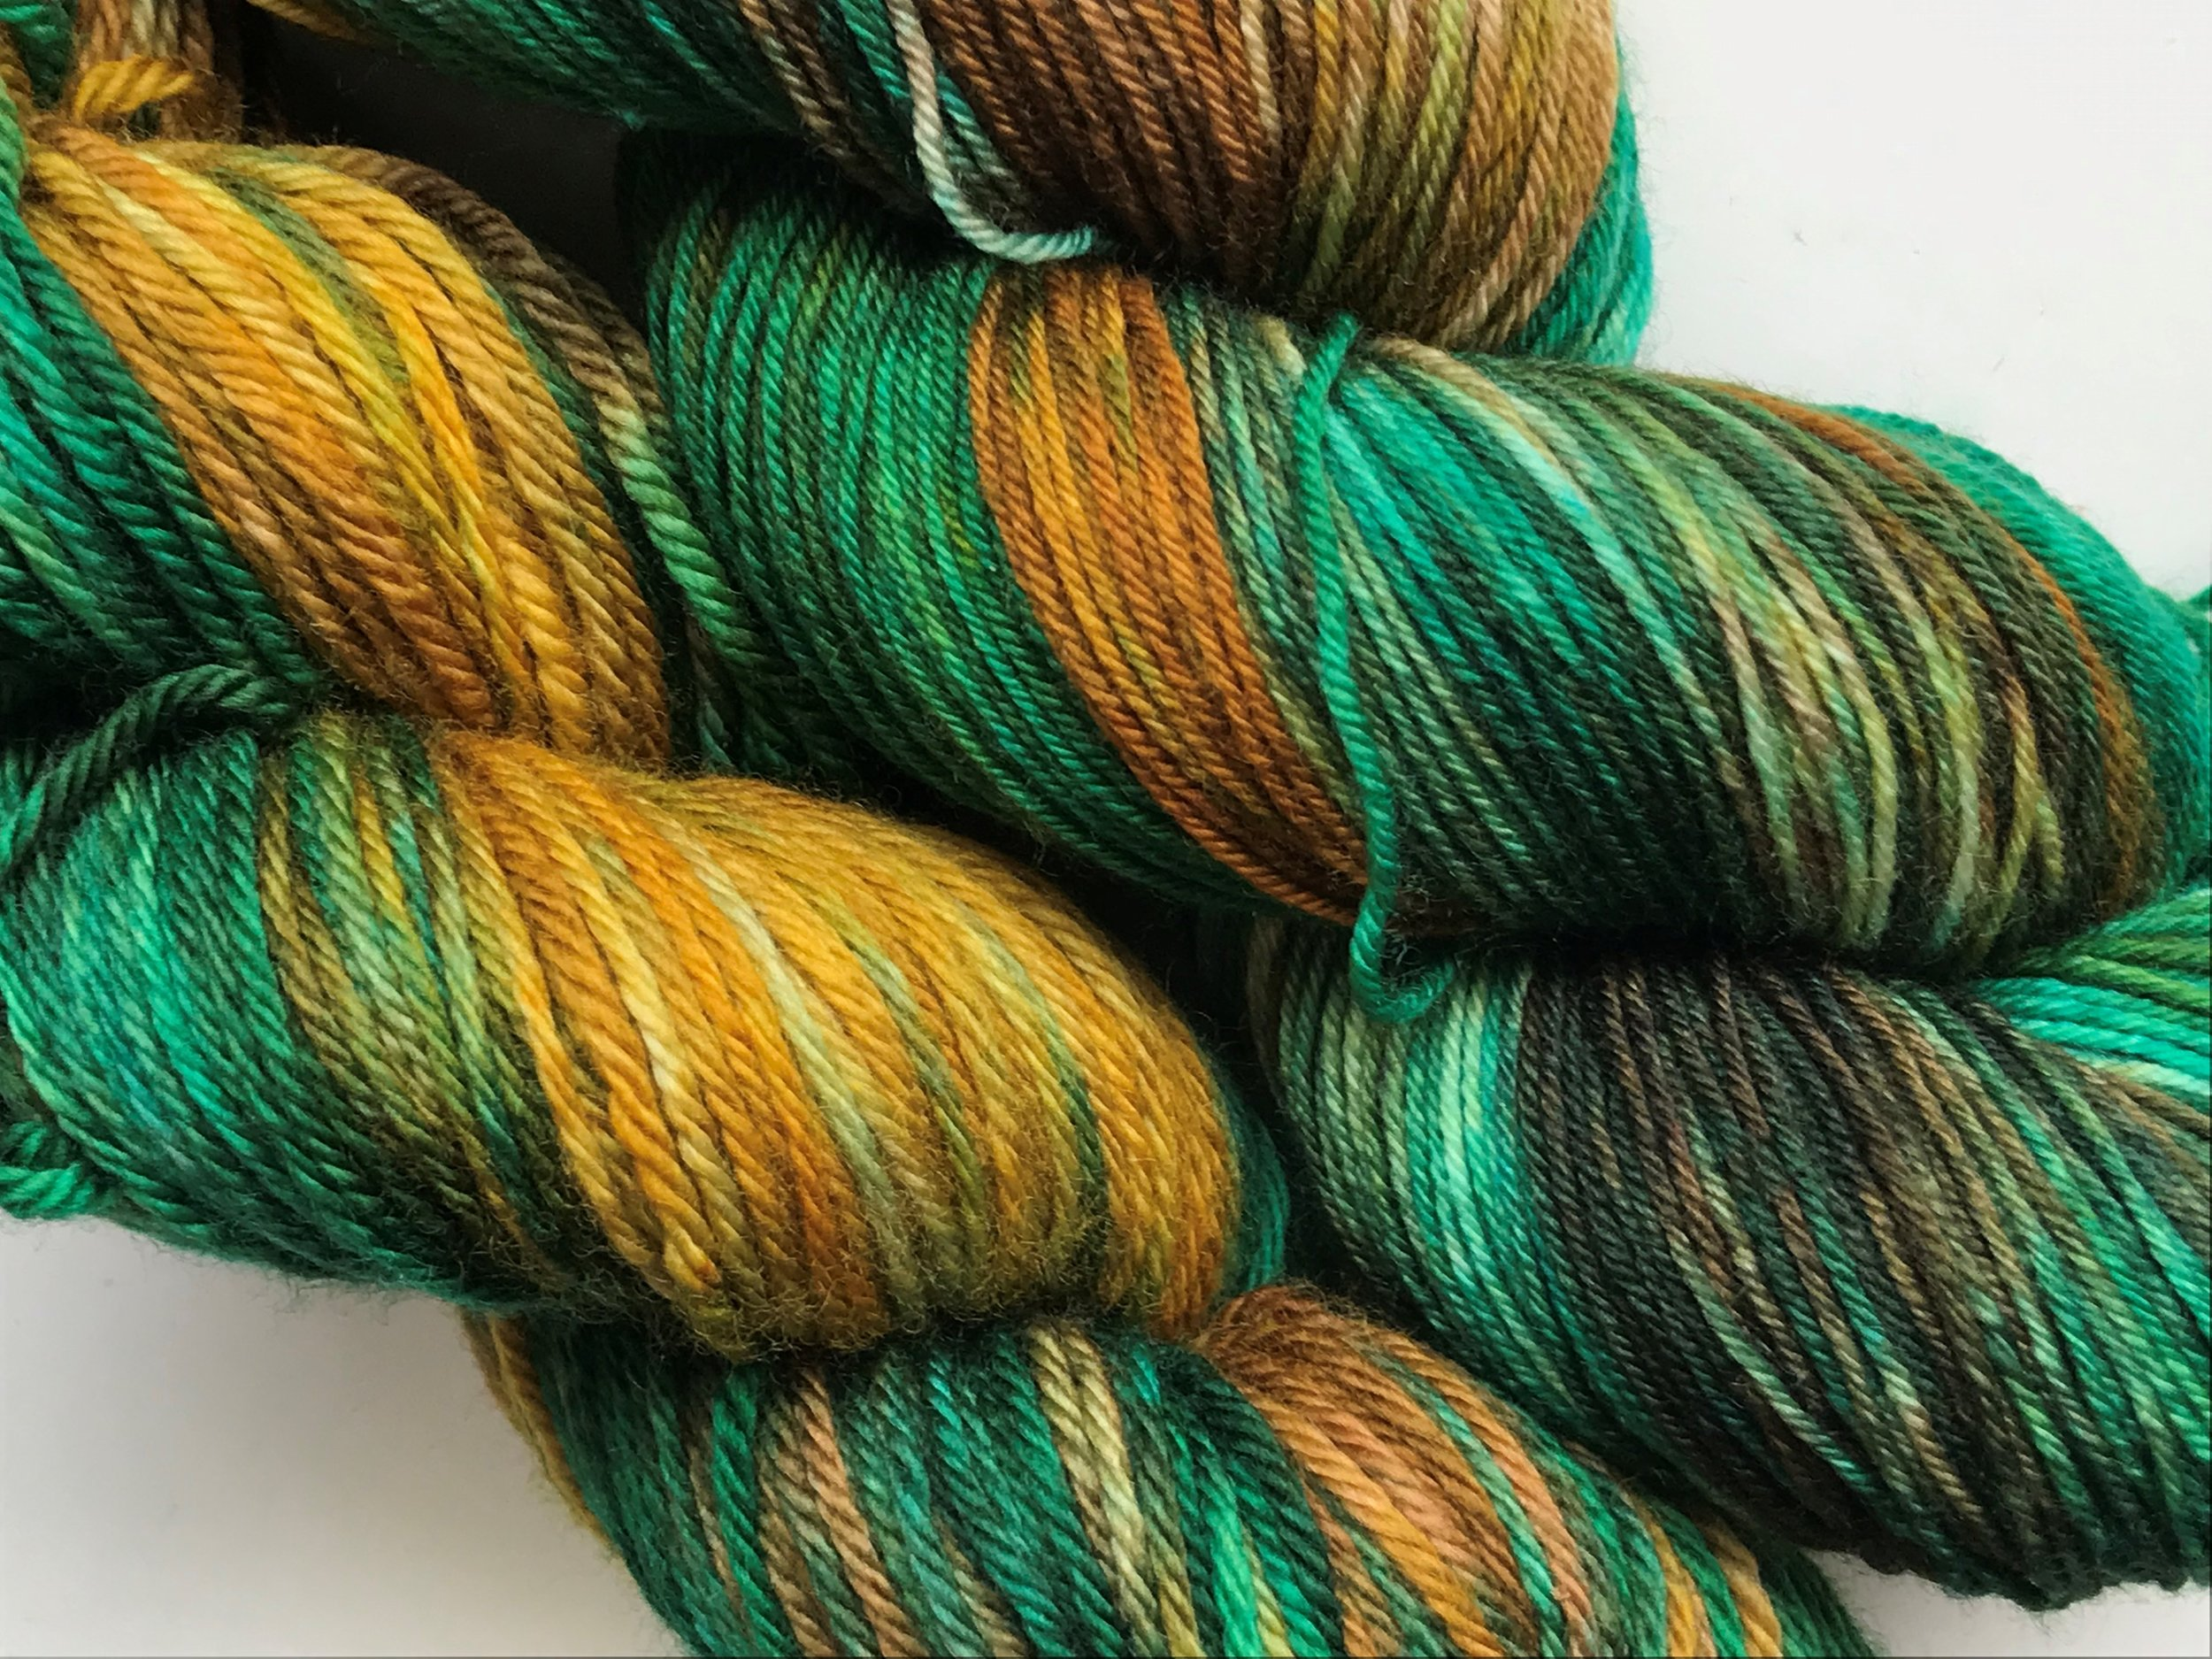 Pictured on Superwash Merino Worsted and Sheepy Feet